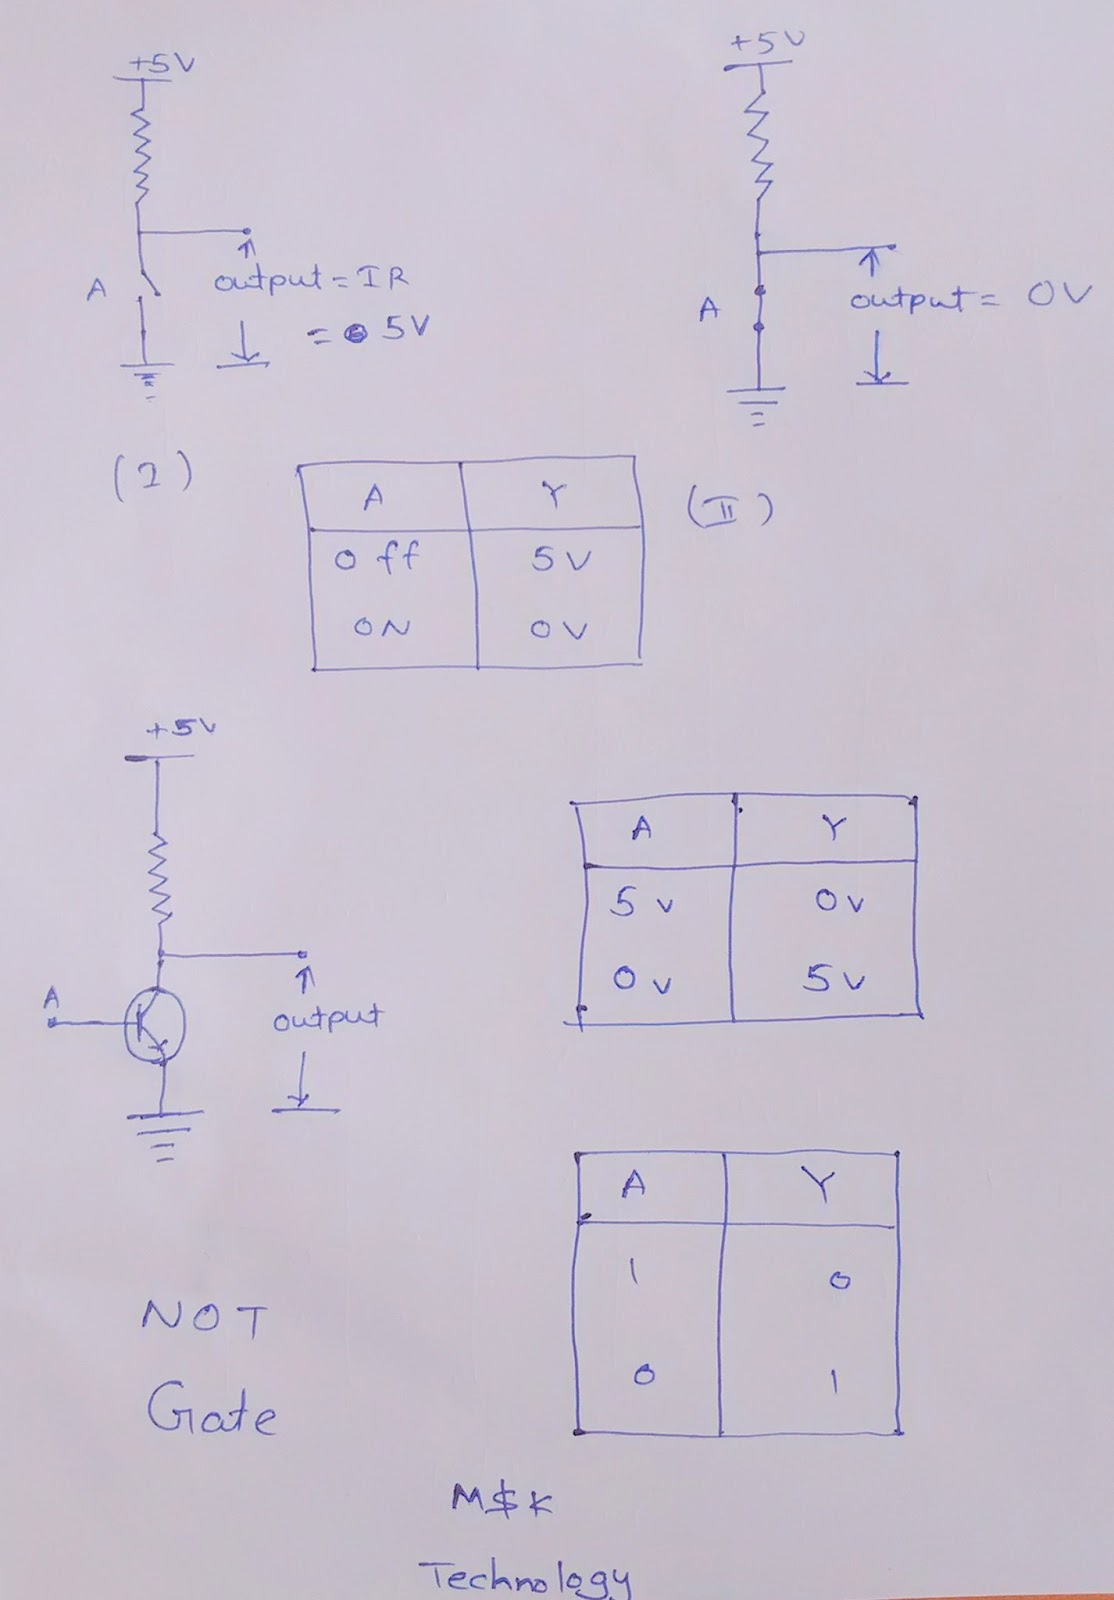 medium resolution of similarly not gate is also made from transistors fig 3 shows the circuit for a not gate using a switch